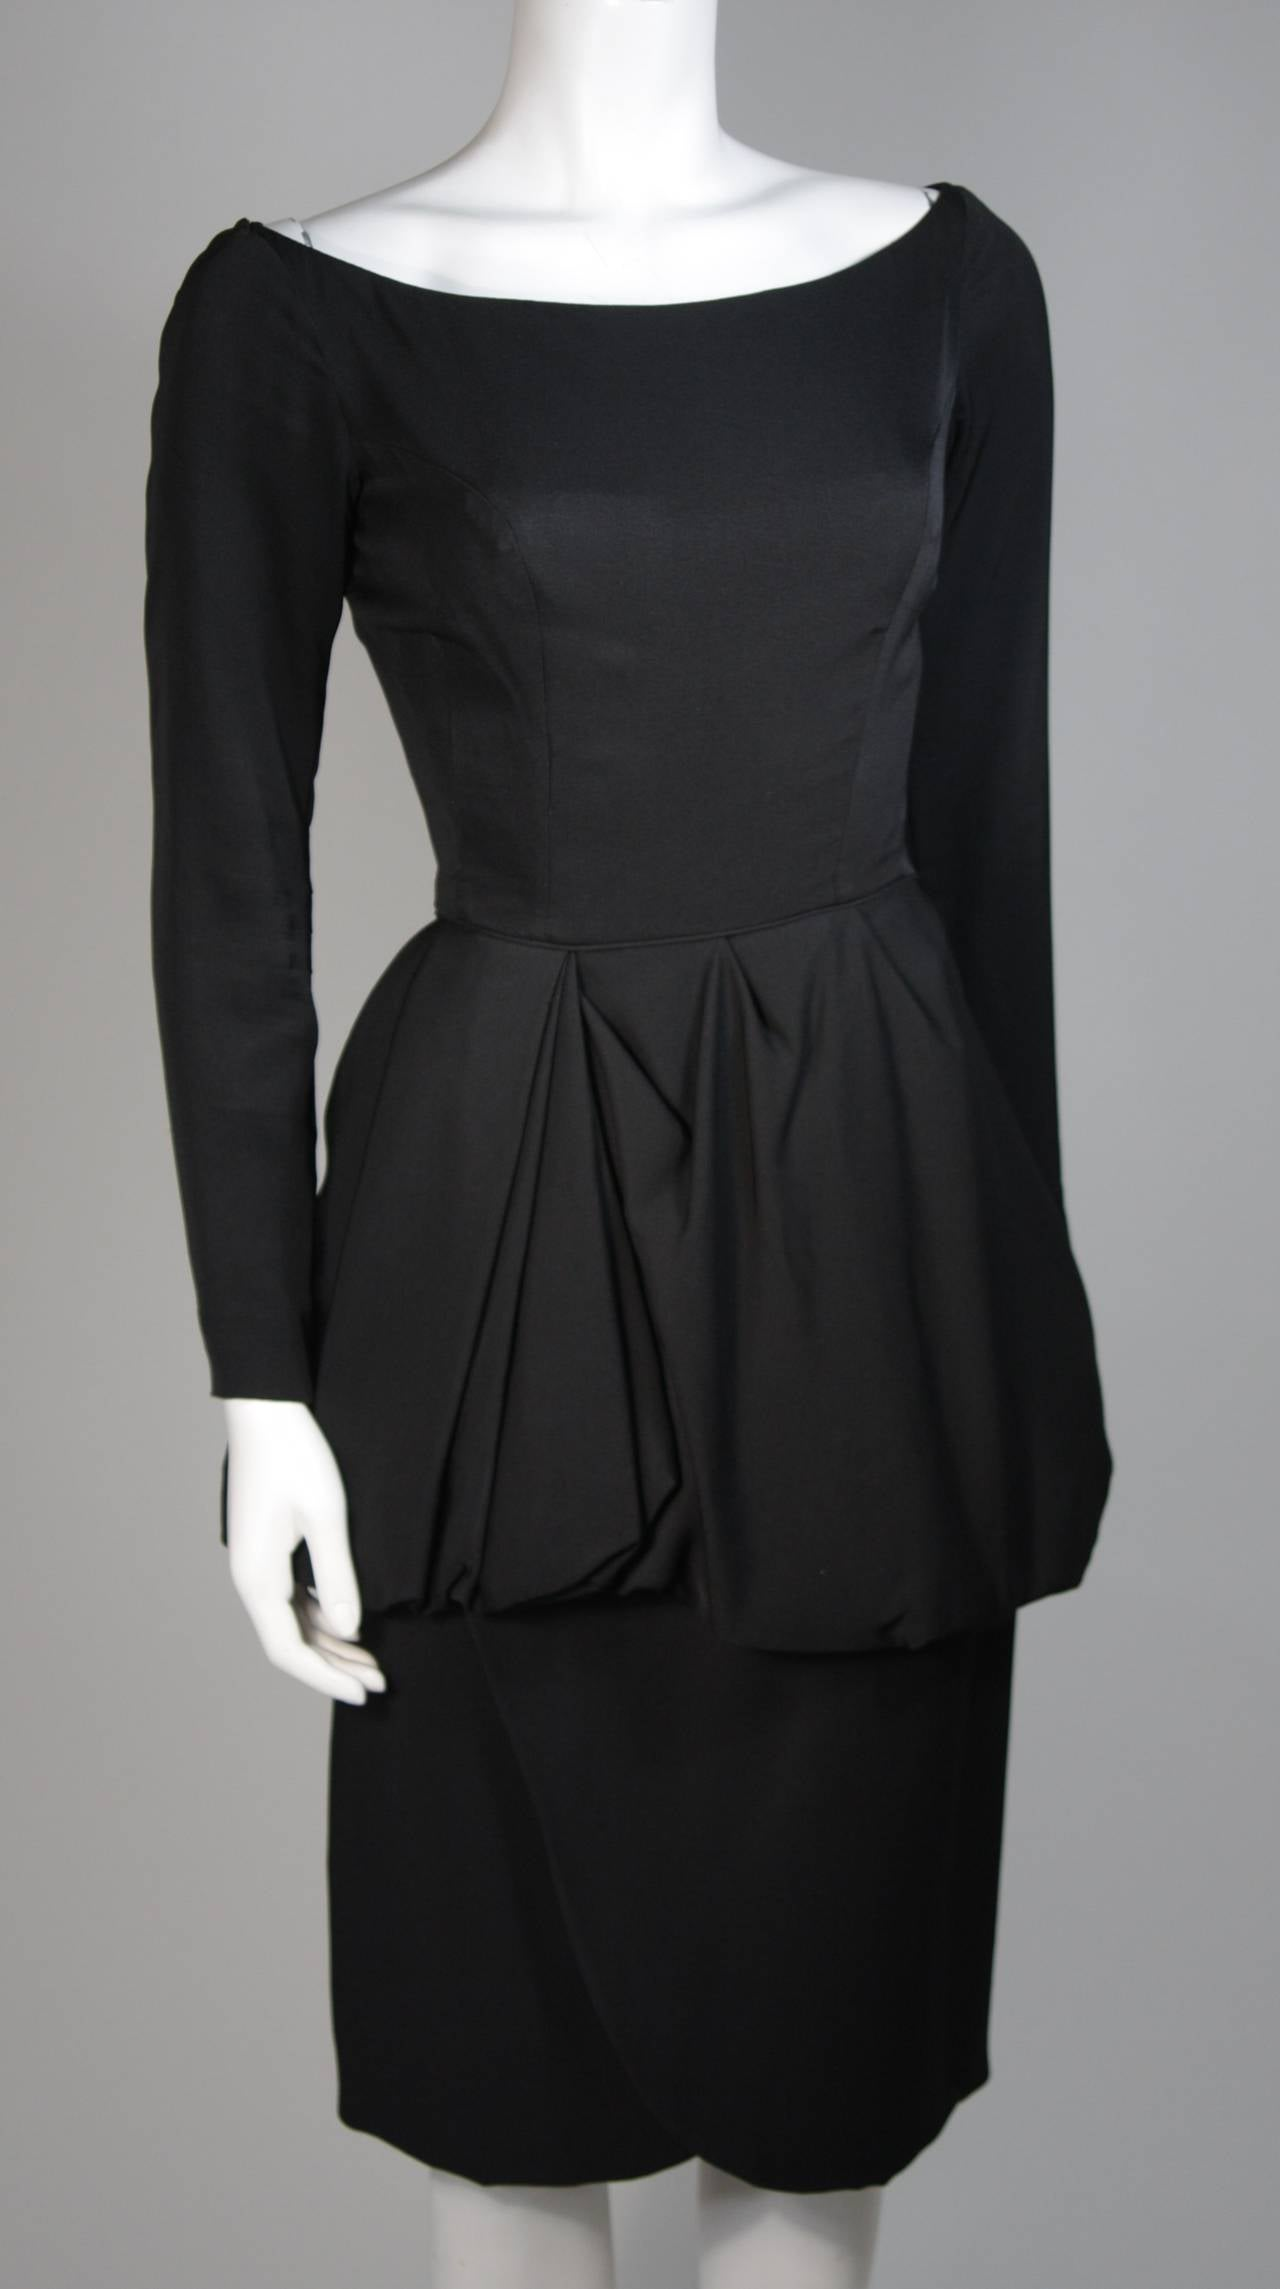 Ceil Chapman 1950's Black Cocktail Dress with Draped Peplum Detail Size Small 4